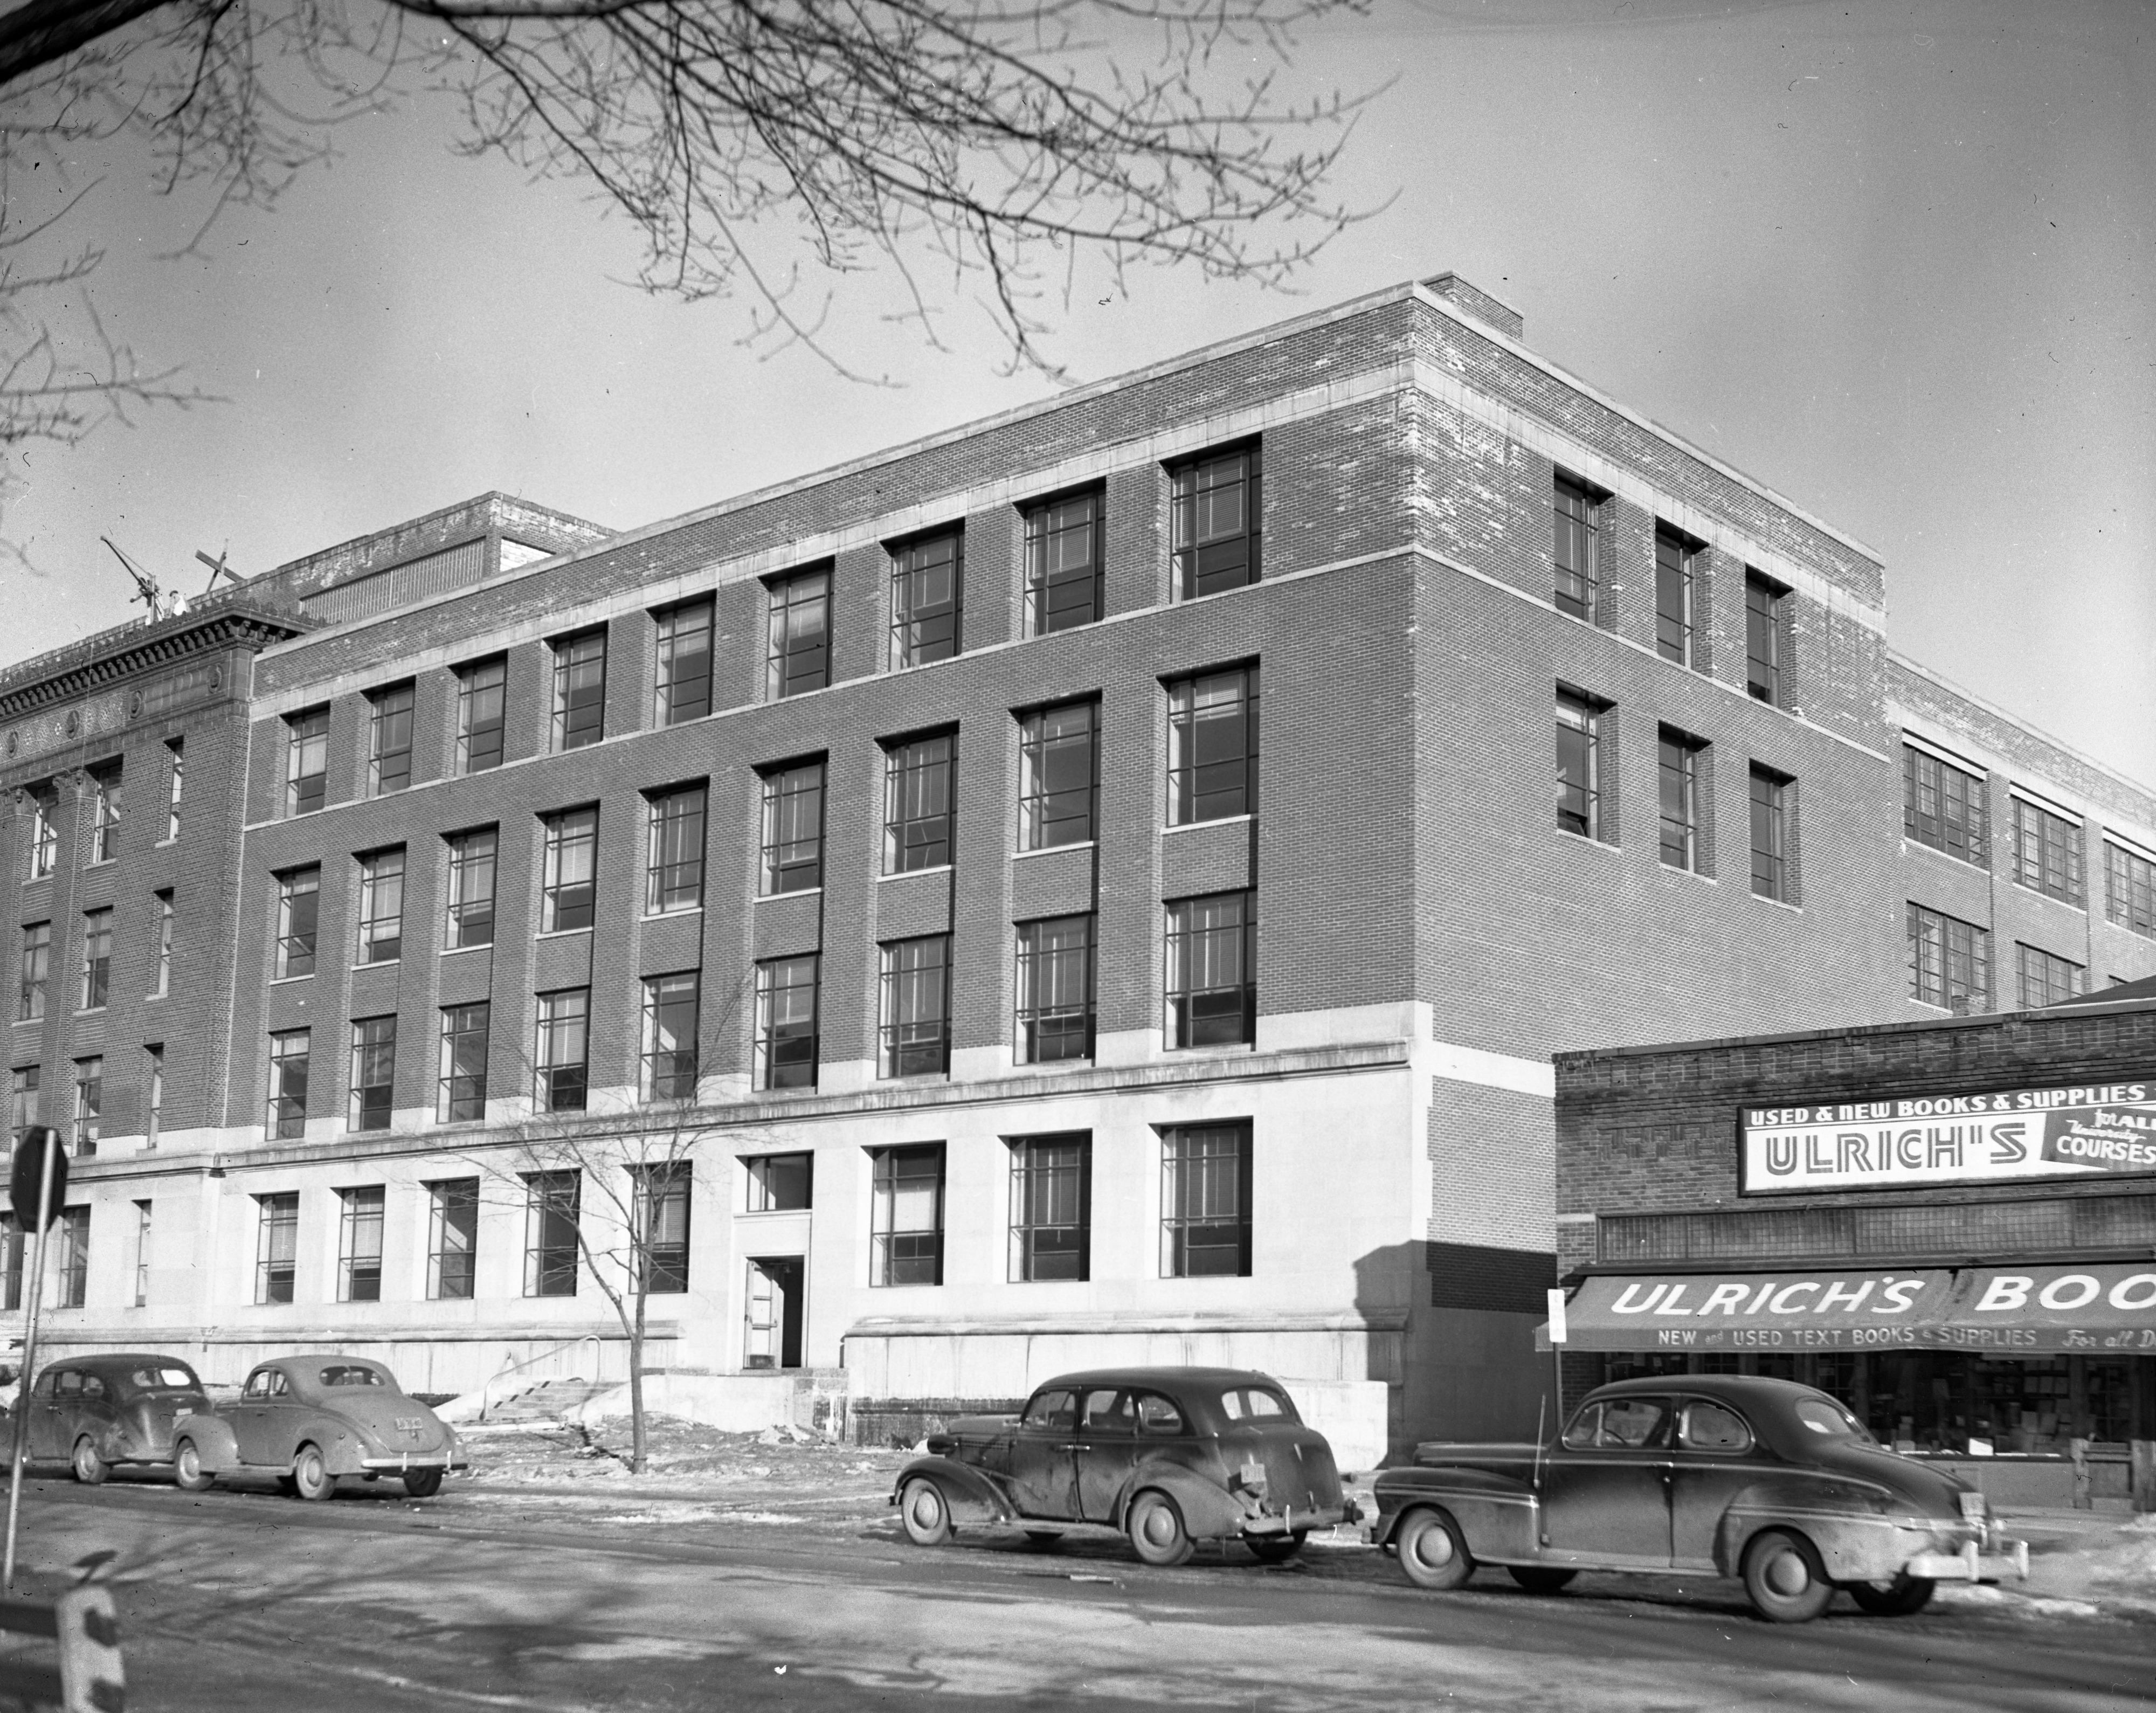 Addition to the East Engineering Building, 500 block of E. University Ave., January 1948 image